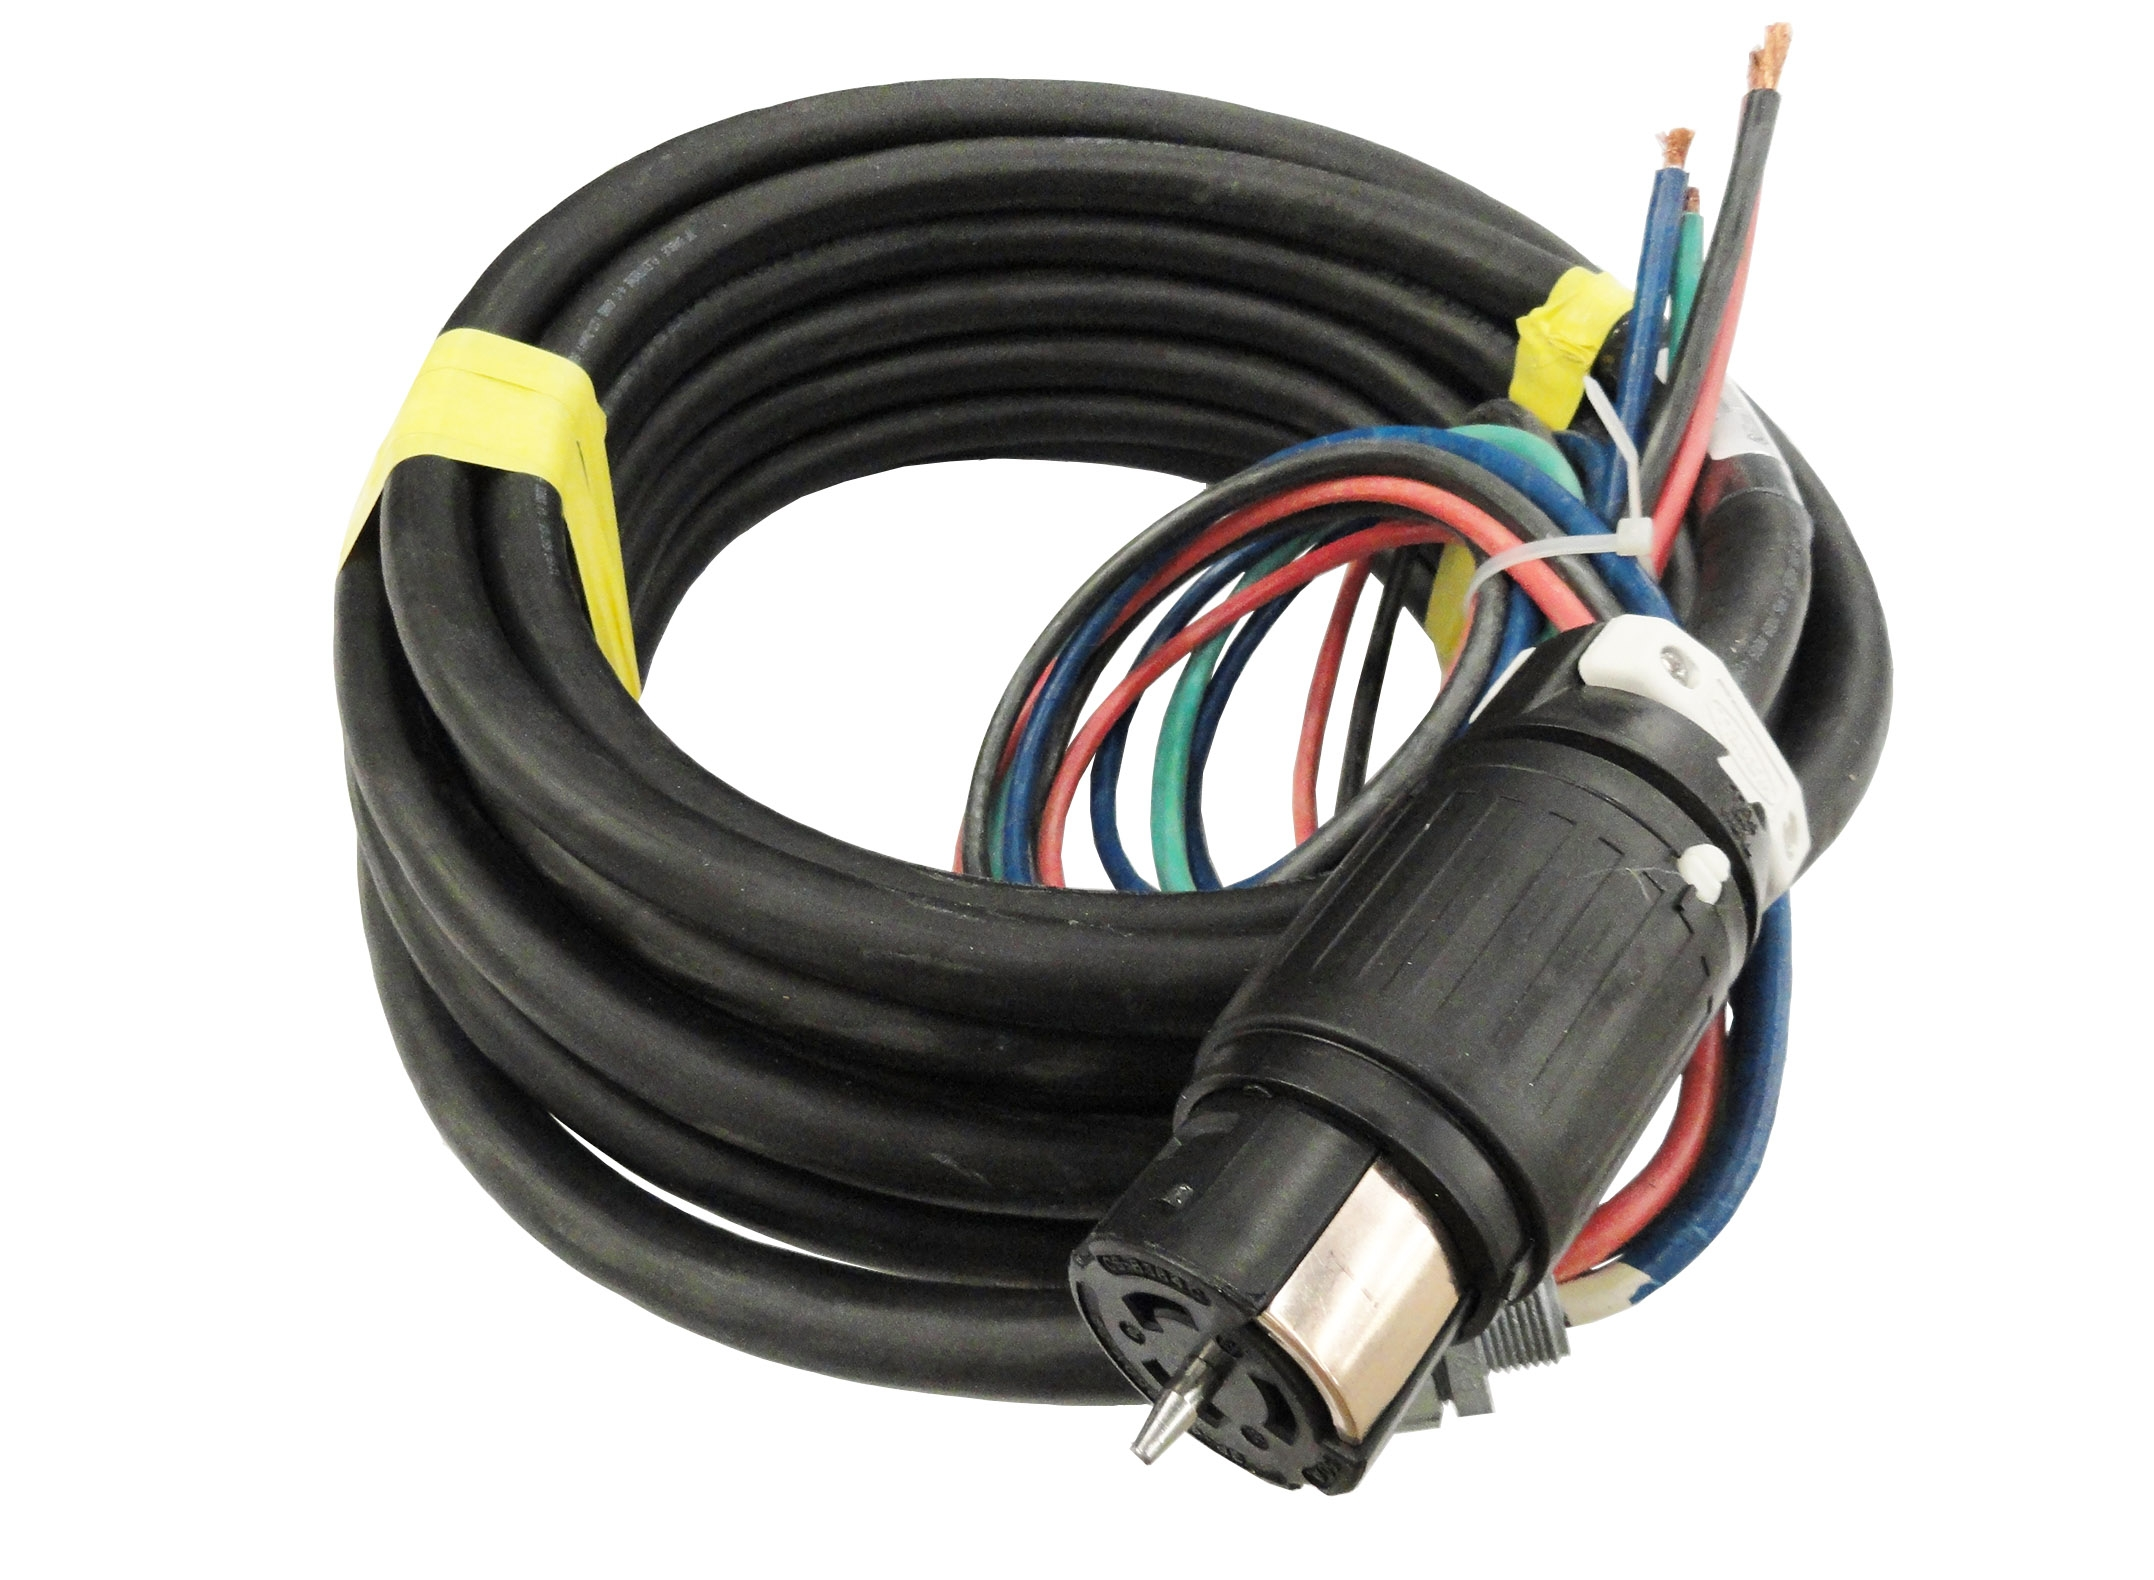 SO Cord (SOOW) Cable Assembly